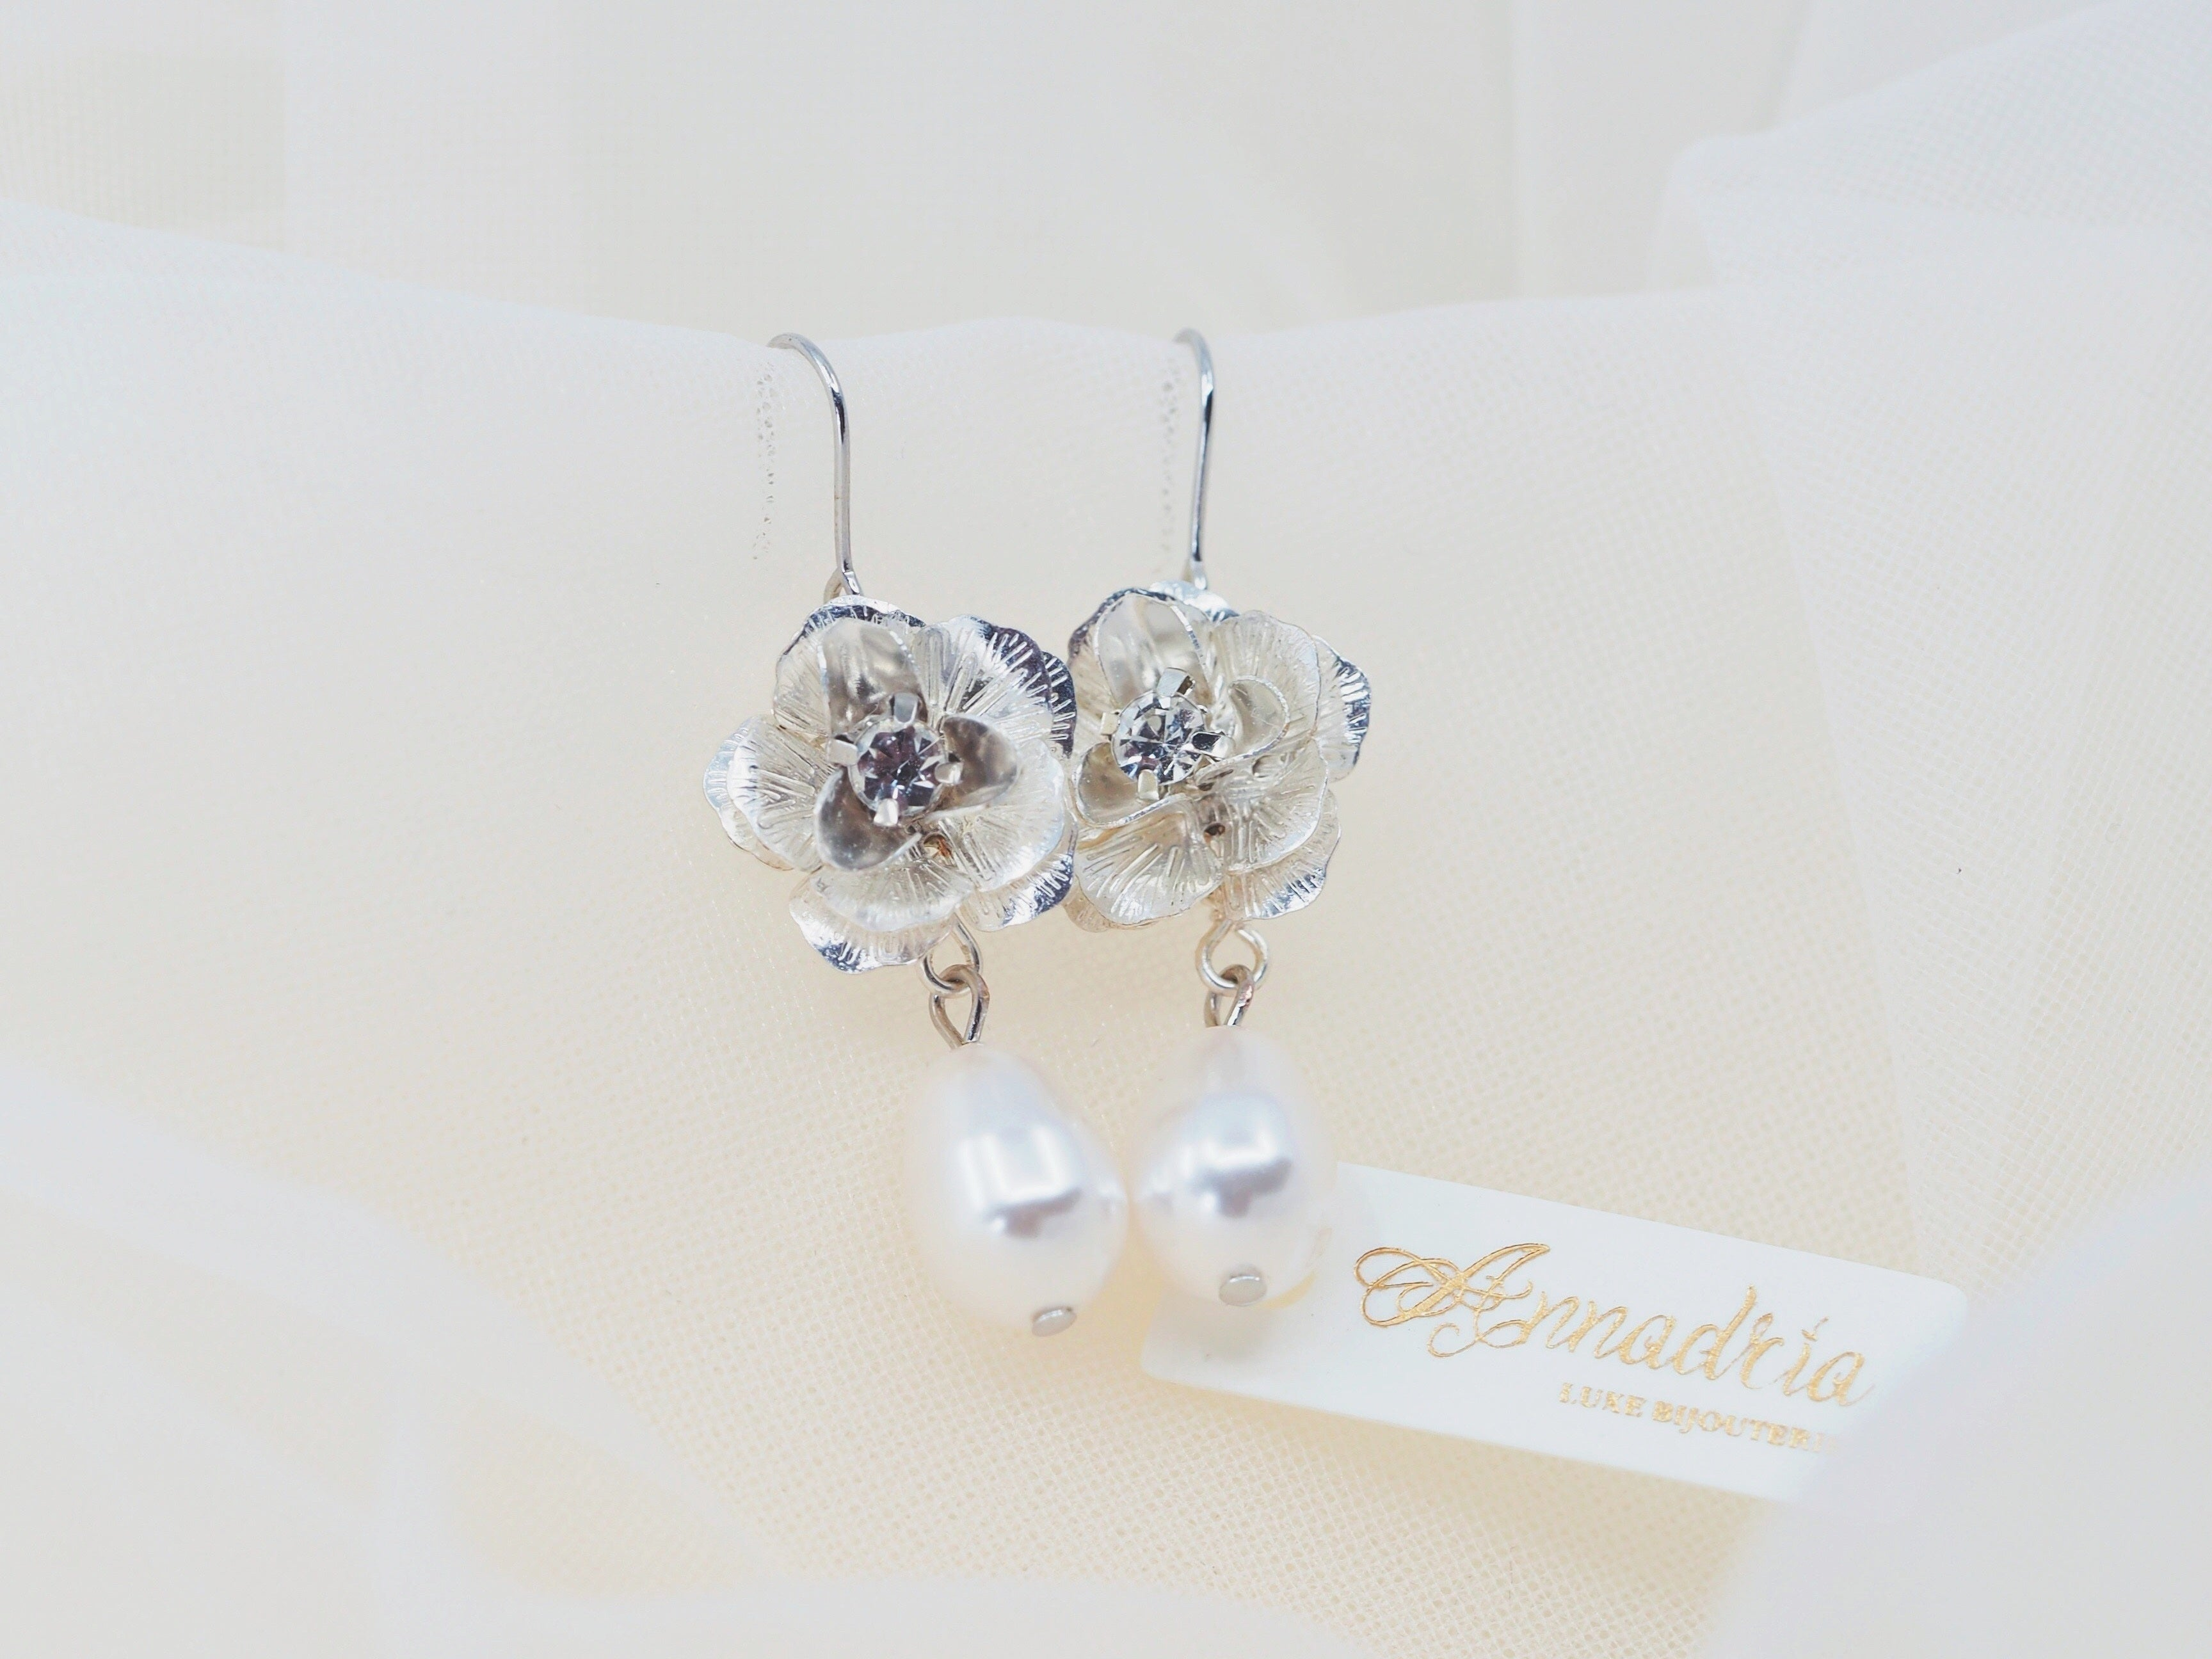 Vintage style bridal earrings with rhinestone flower and pearl drop